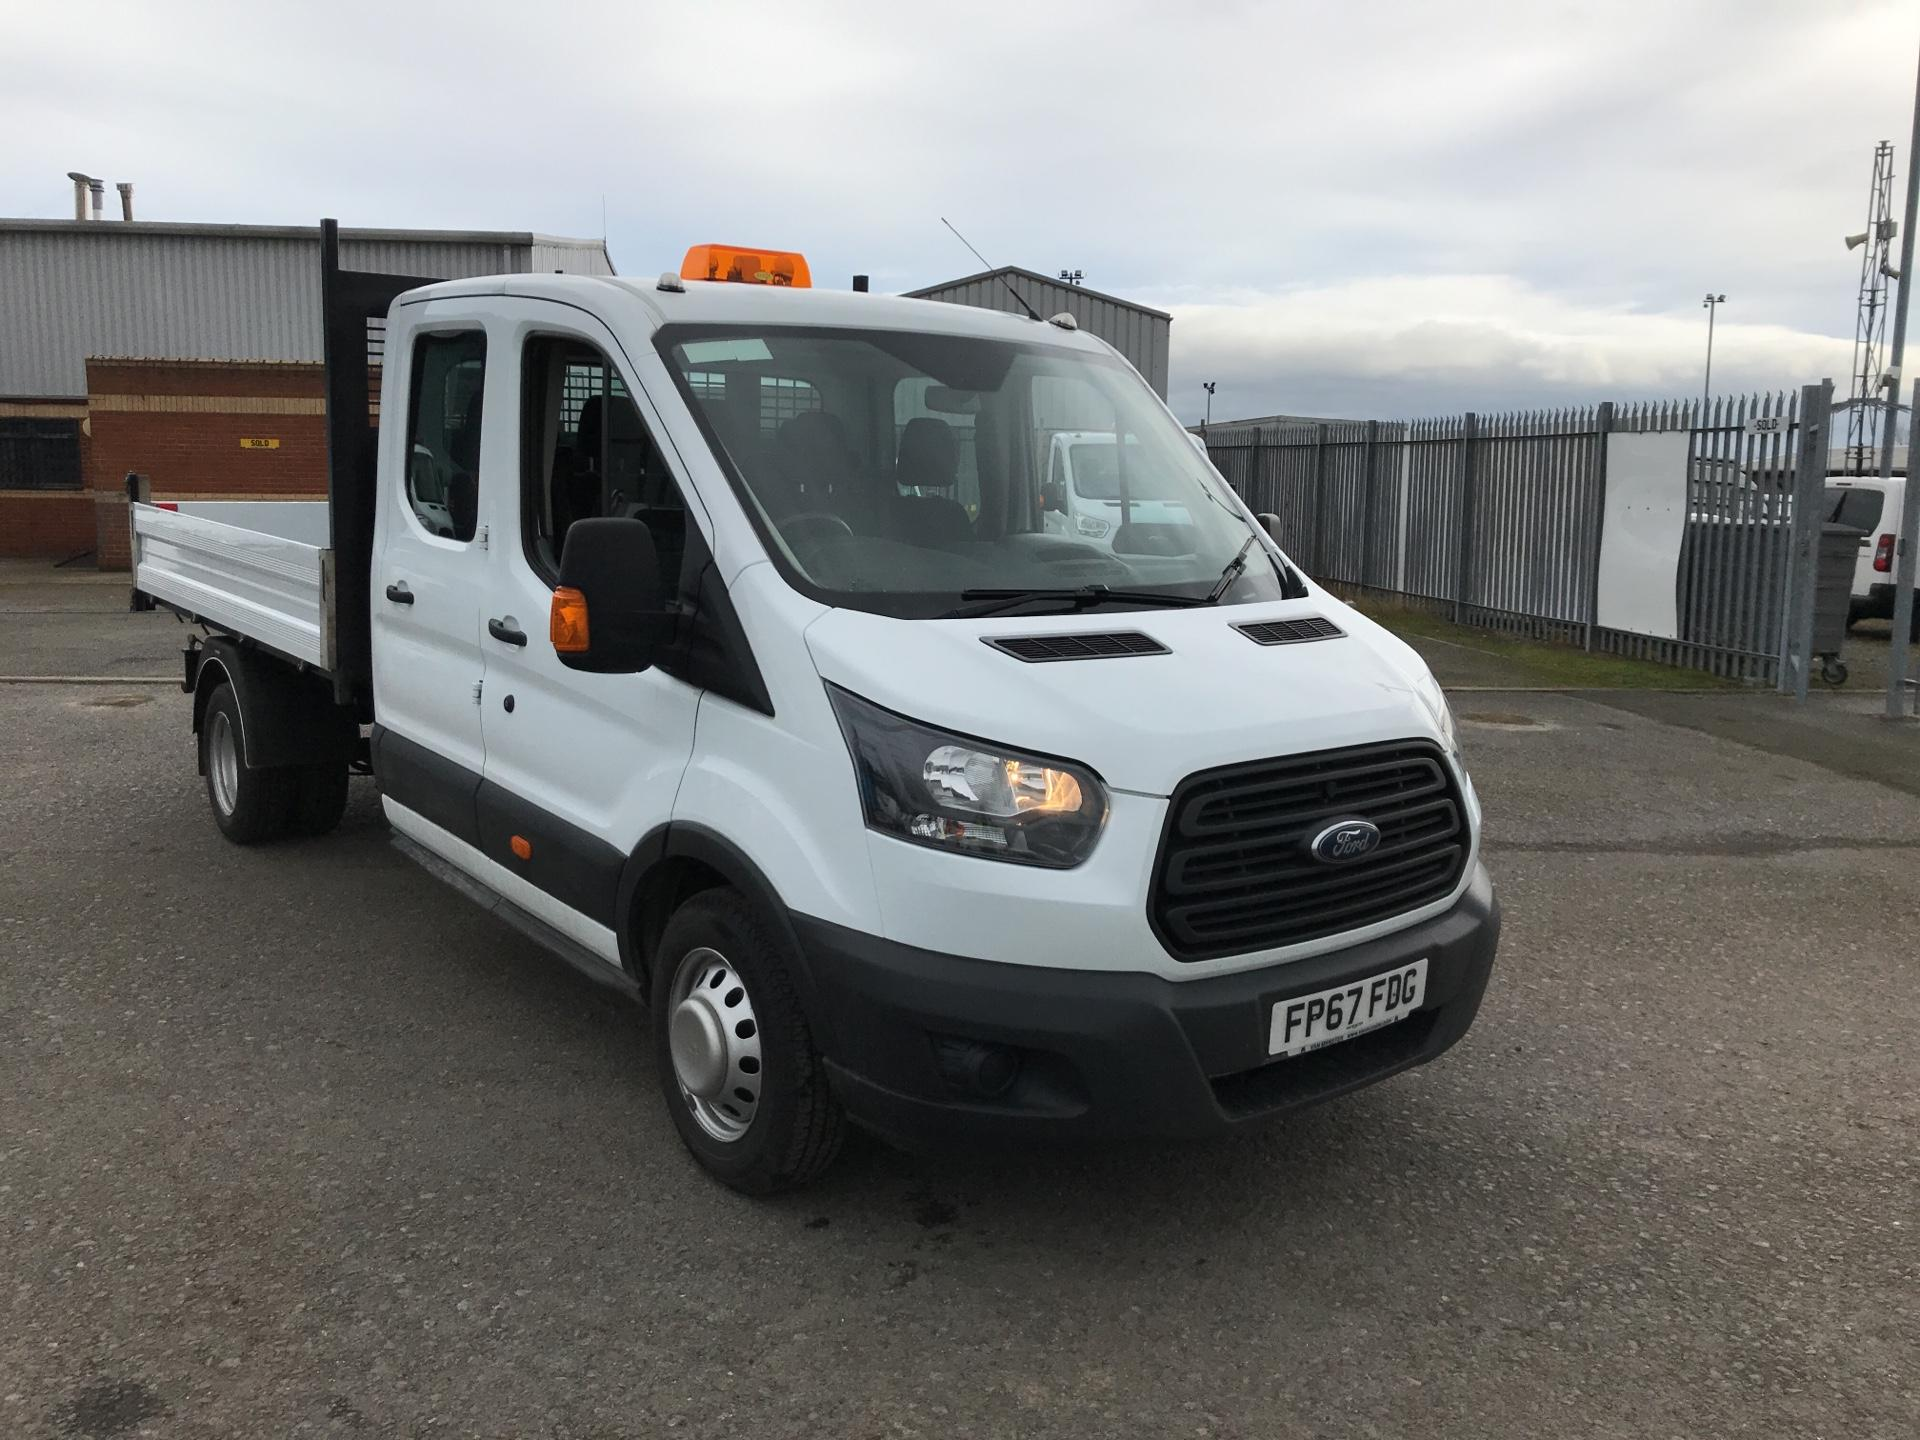 2018 Ford Transit  350 L3 DOUBLE CAB TIPPER 130PS EURO 5 (FP67FDG)